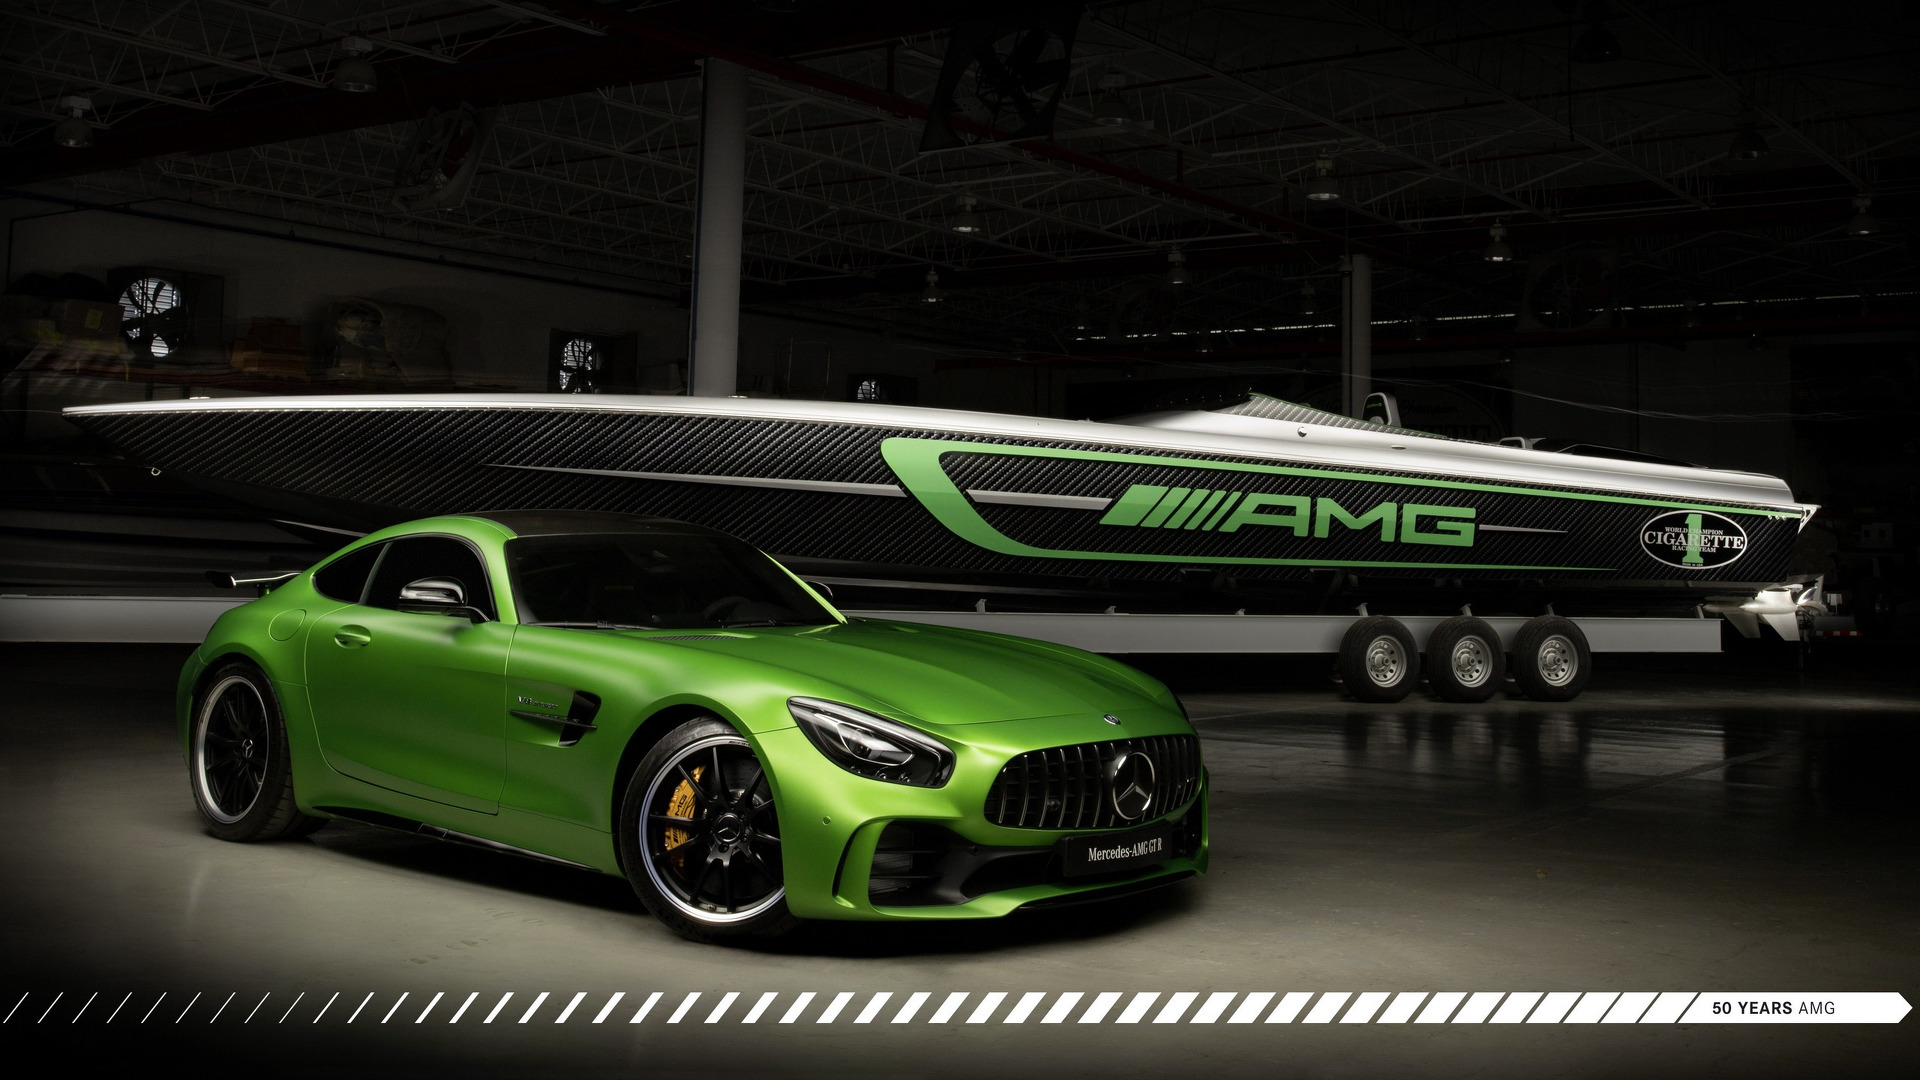 Mercedes Amg Gt R Cigarette Racing Boat Has A Pleasure Key Fob